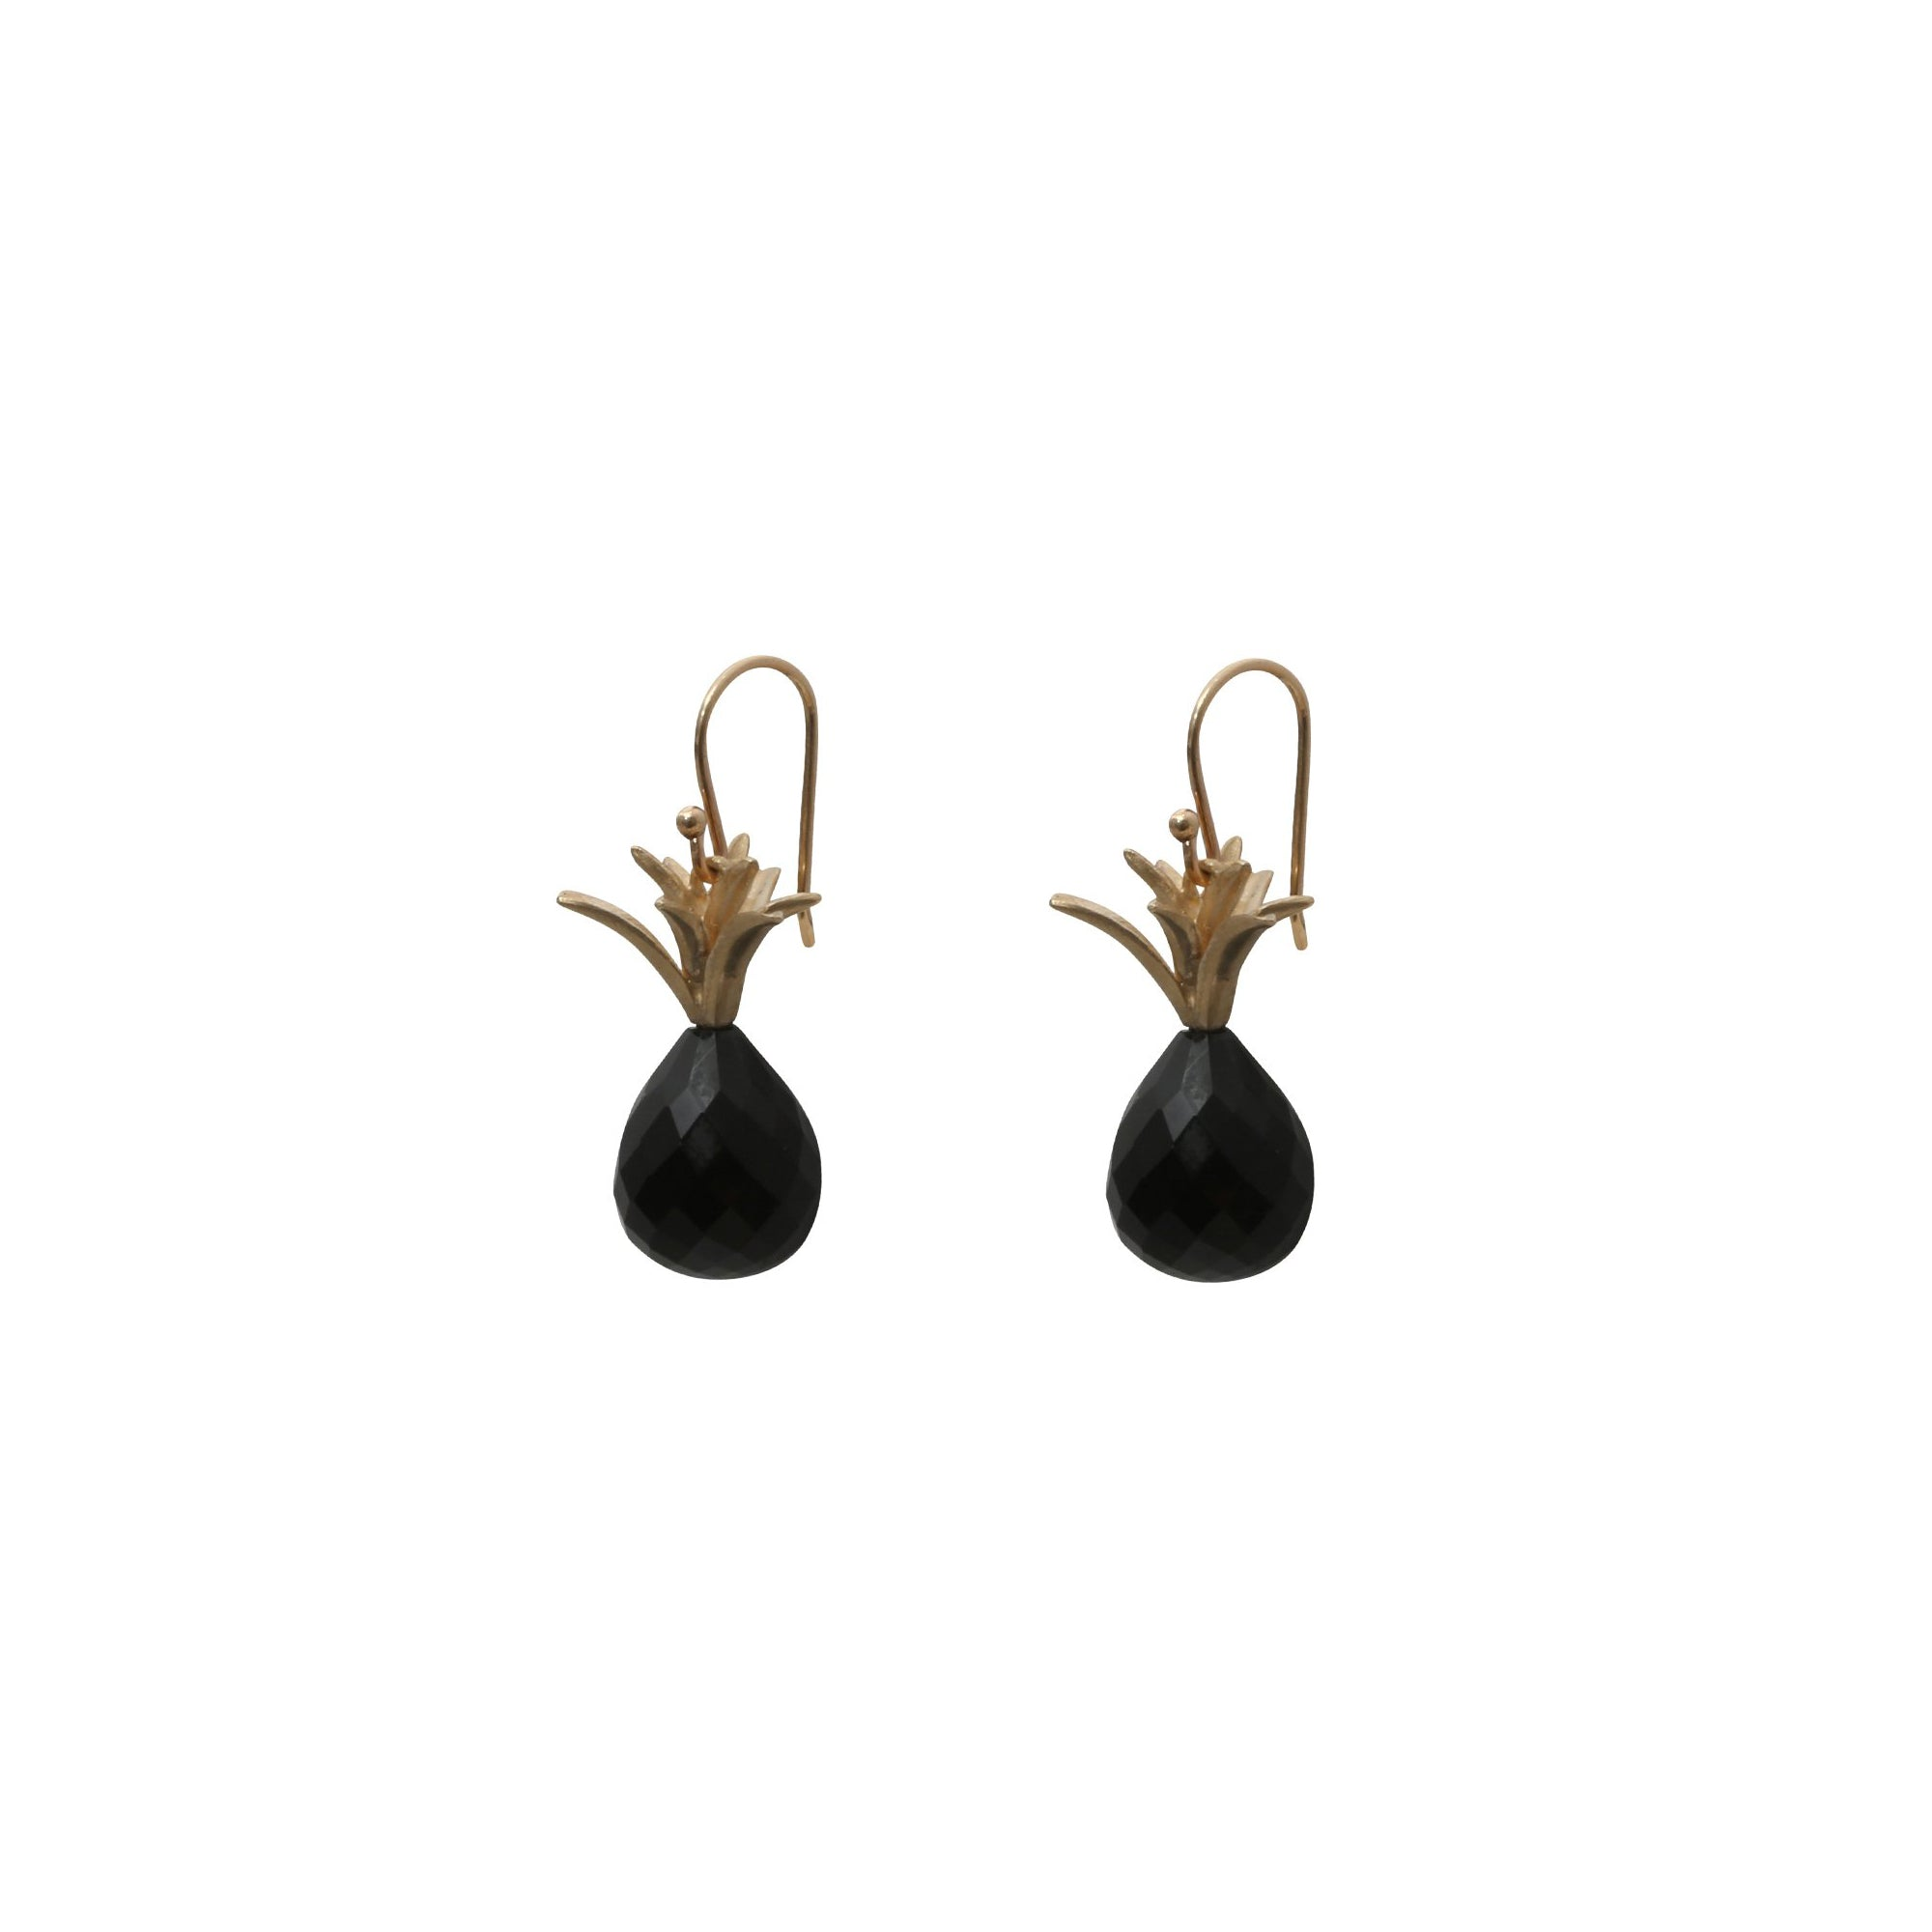 Gold & Onyx Pineapple Earrings by Annette Ferdinandsen for Broken English Jewelry